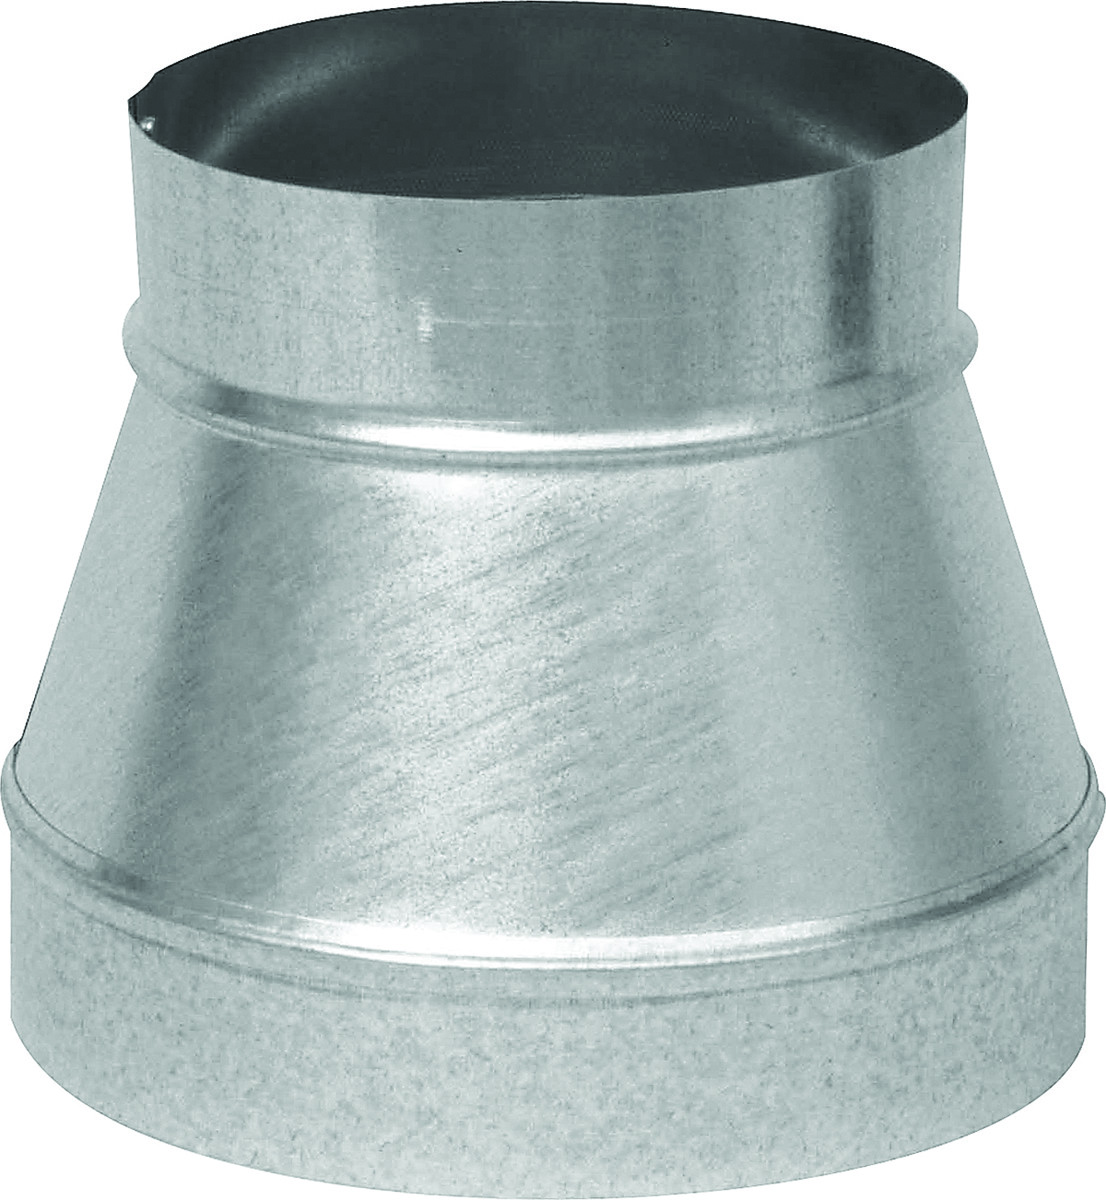 Imperial Manufacturing Gv1269 Stovepipe Reducer Increaser  Inch Tap To Expand